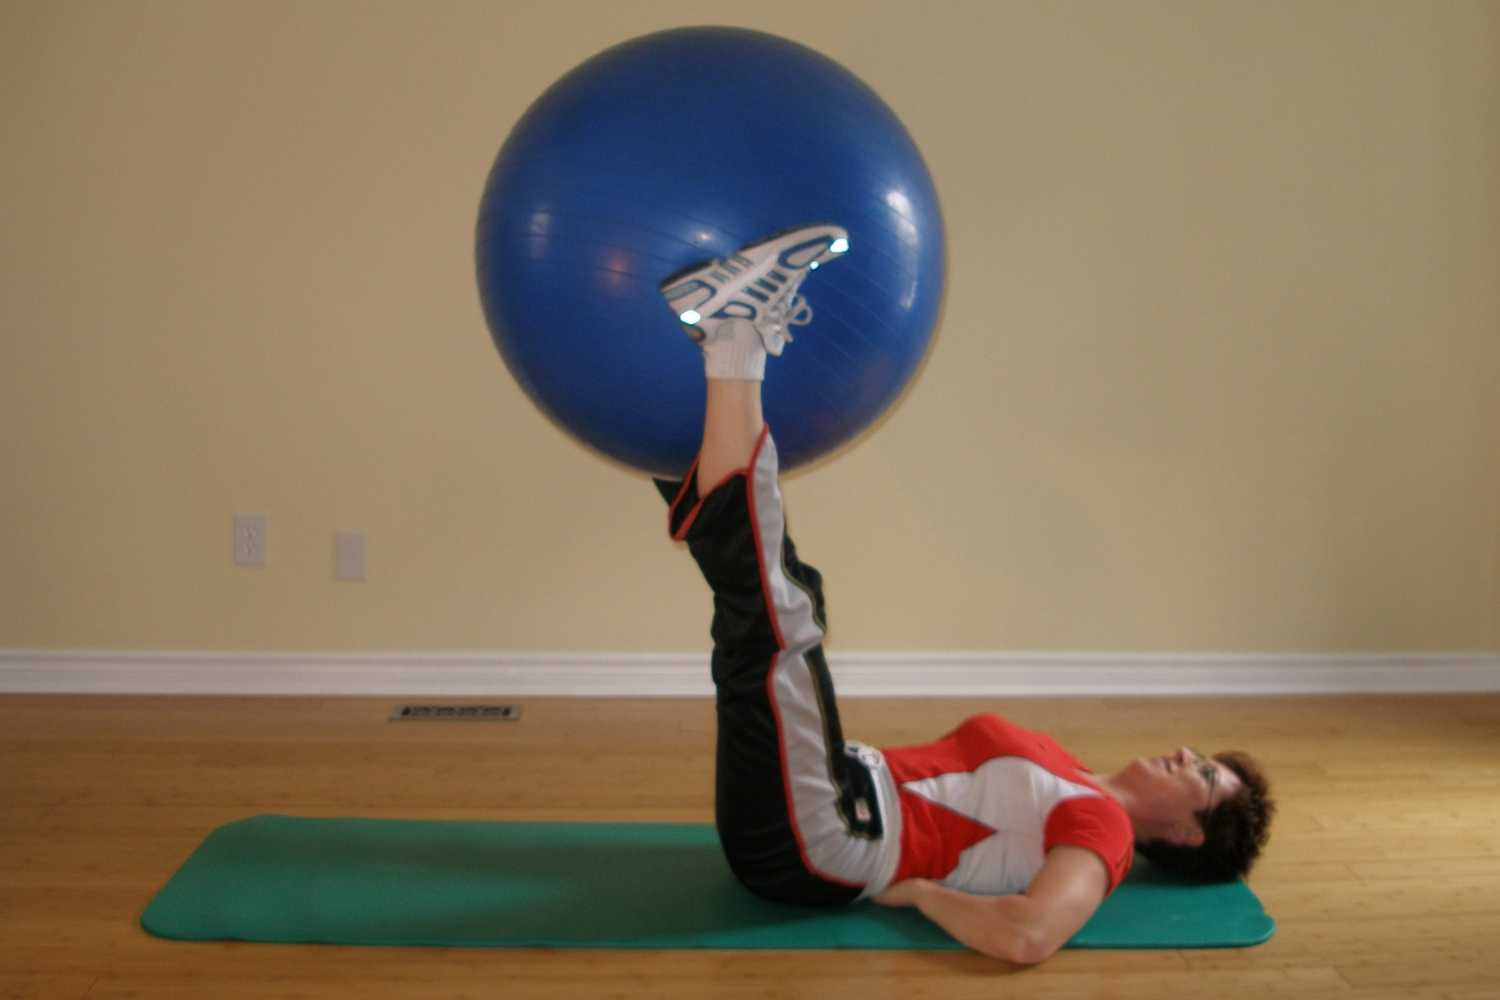 straight leg hip crunch ball exercise start position